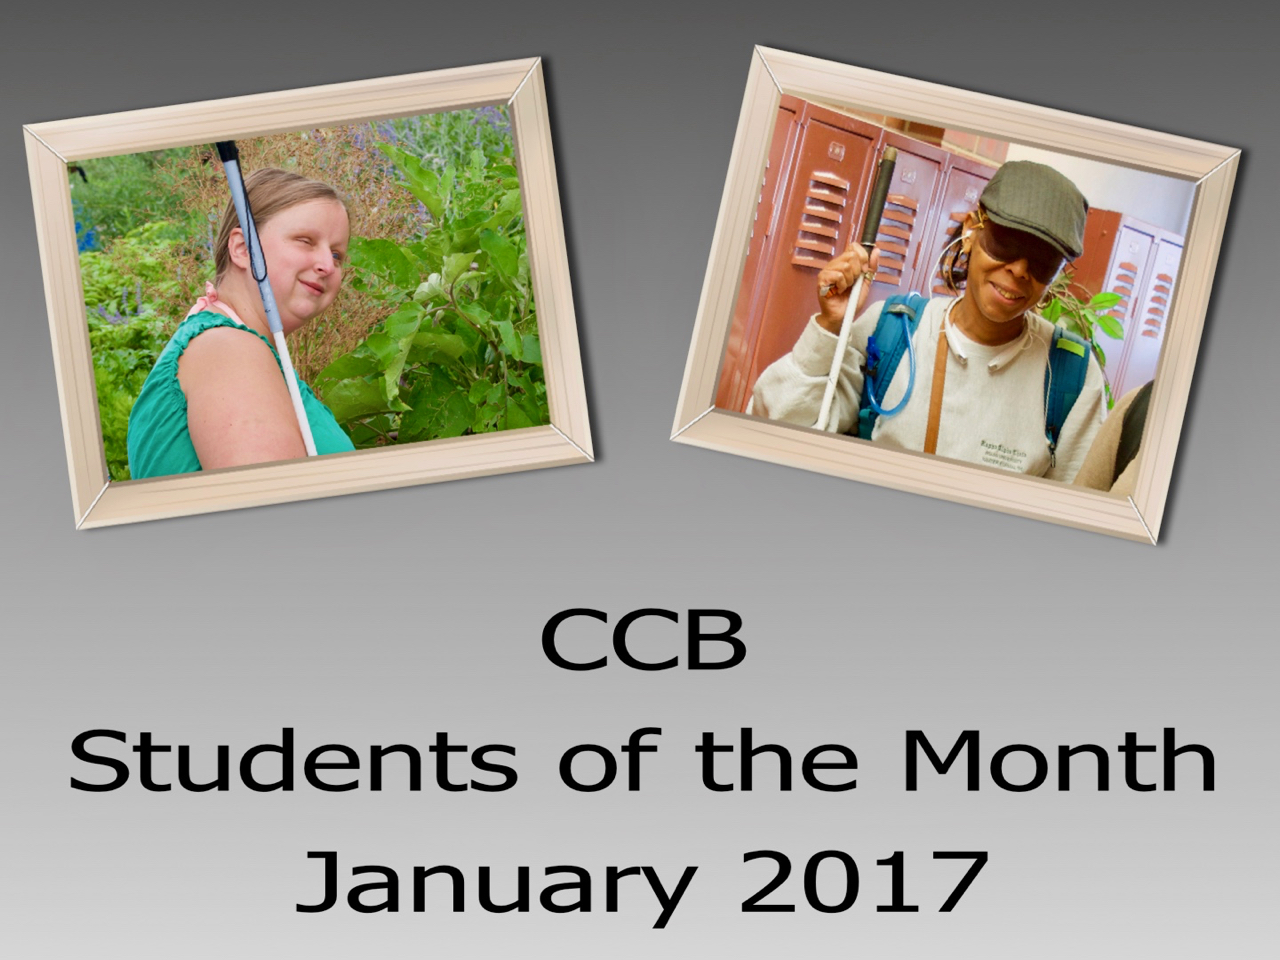 Announcing our first Students of the Month – January 2017!